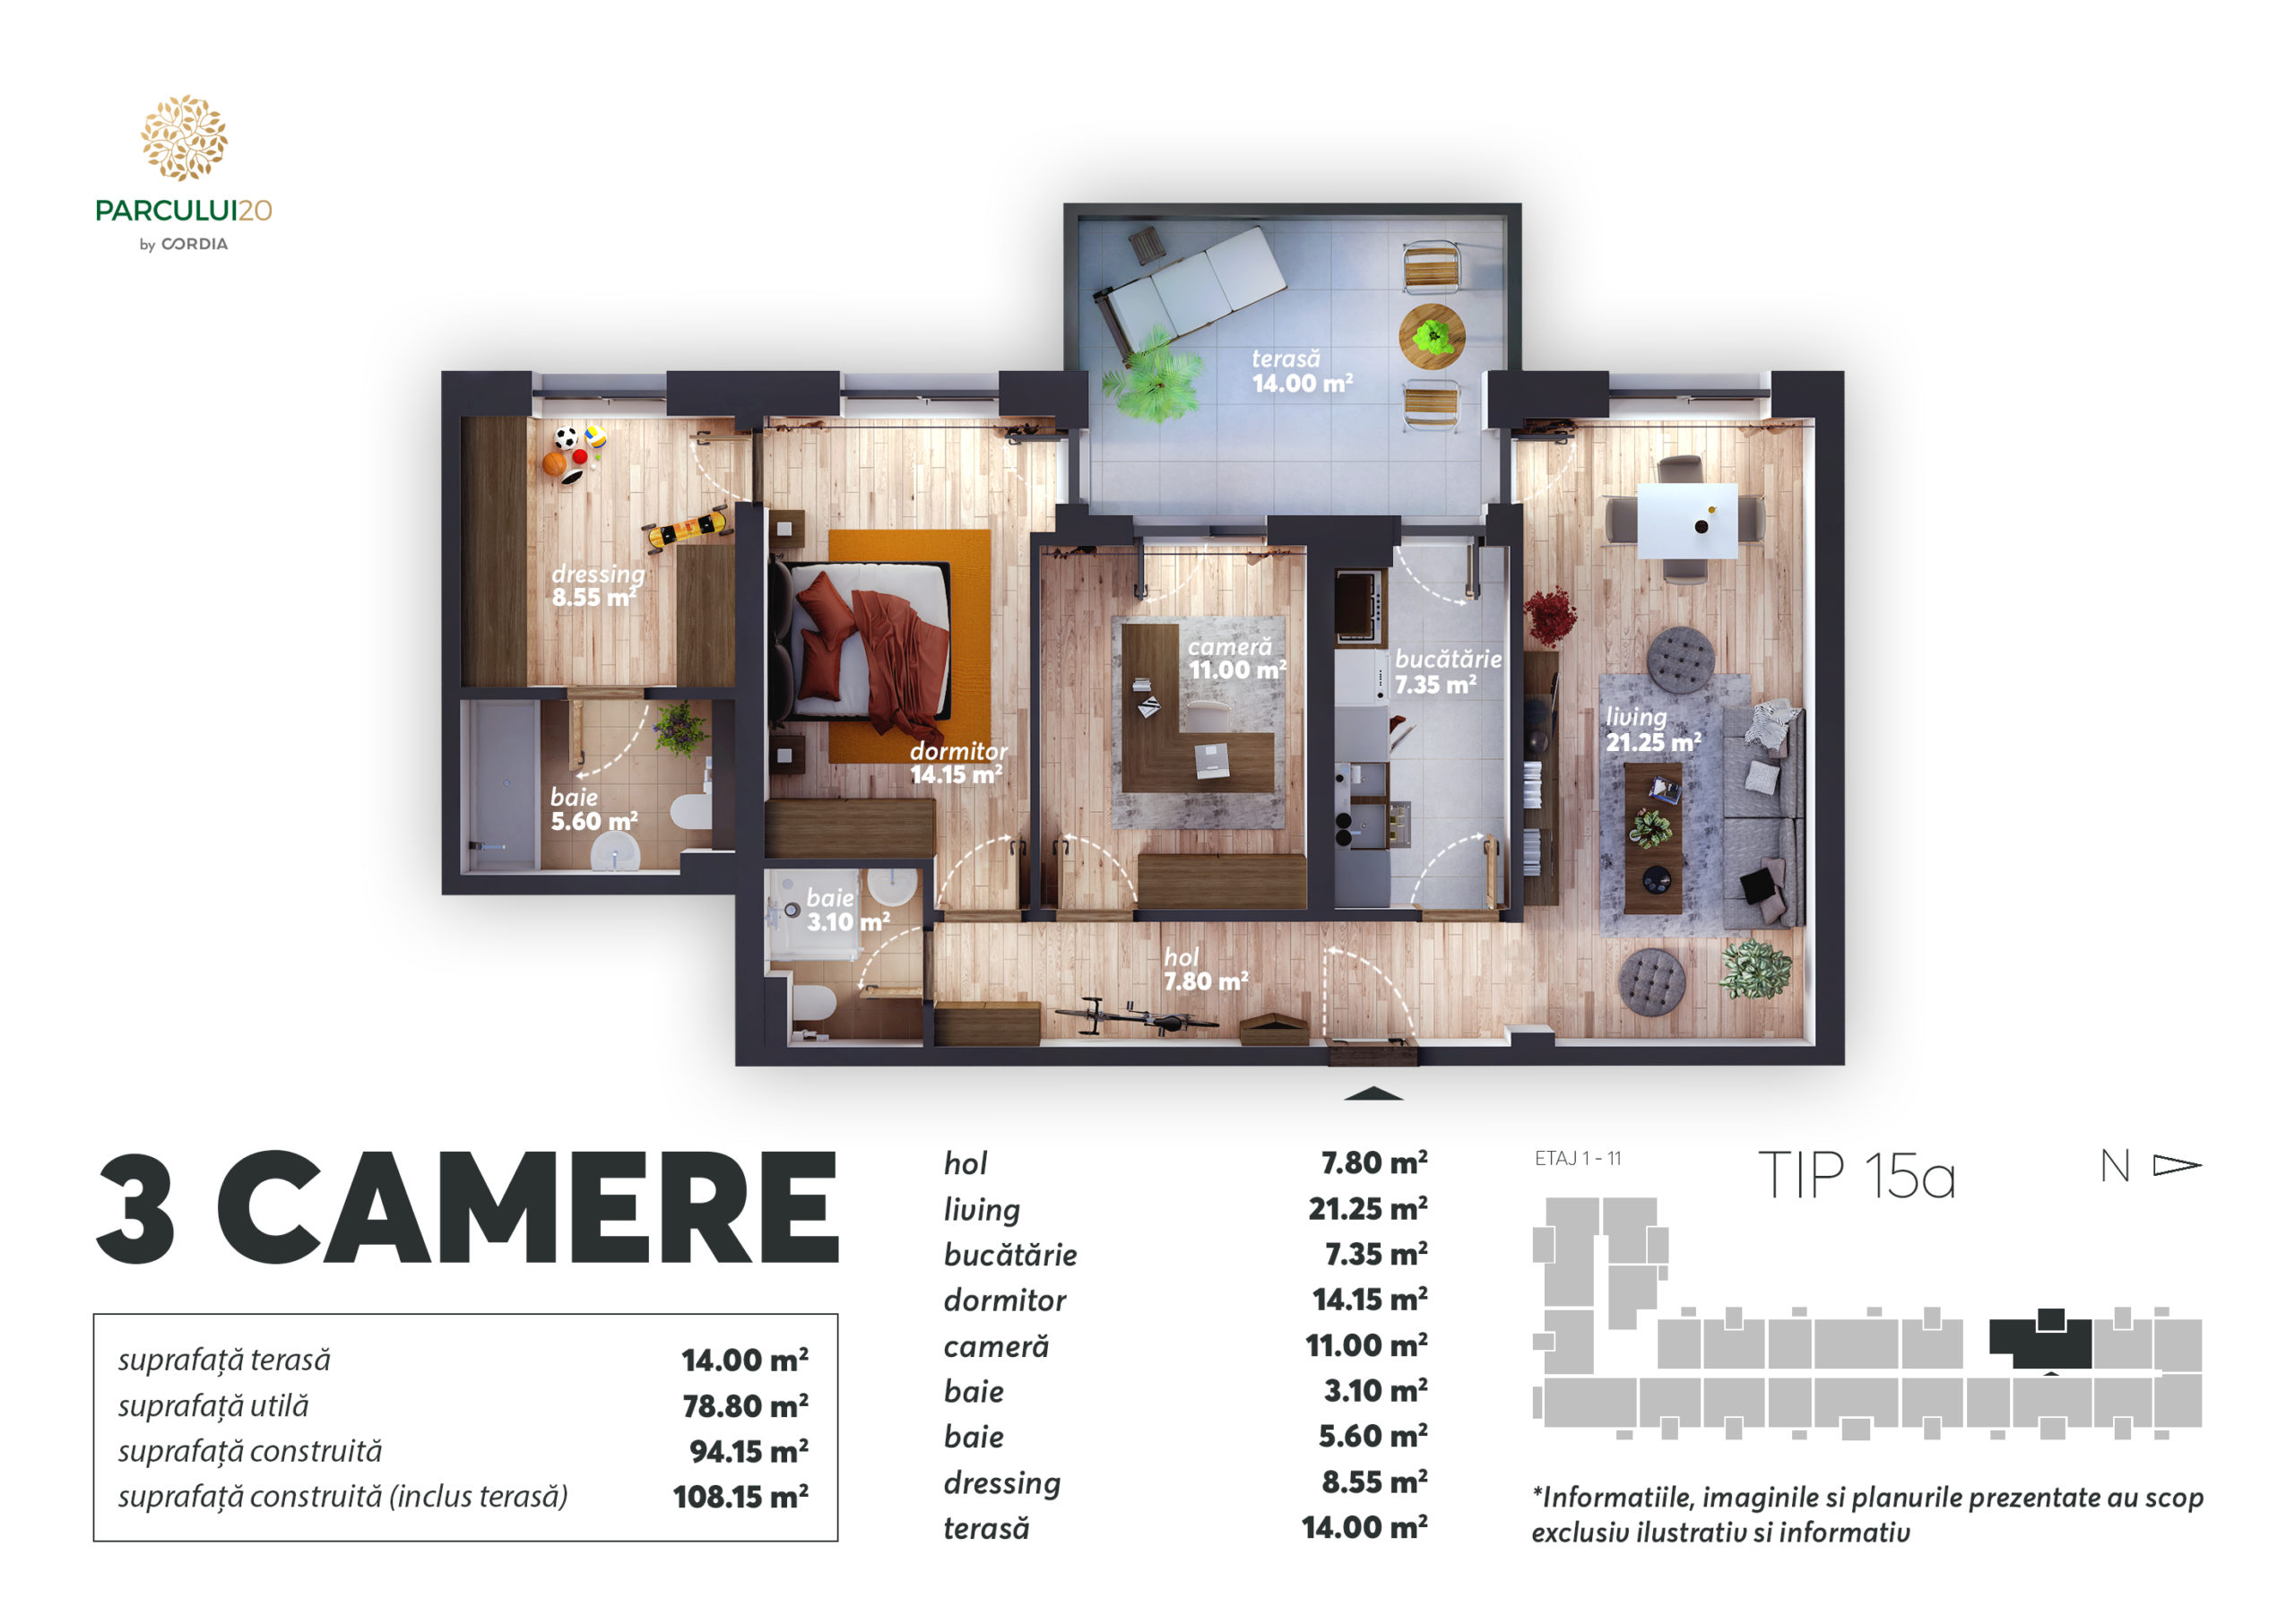 Three-room apartment Parcului20